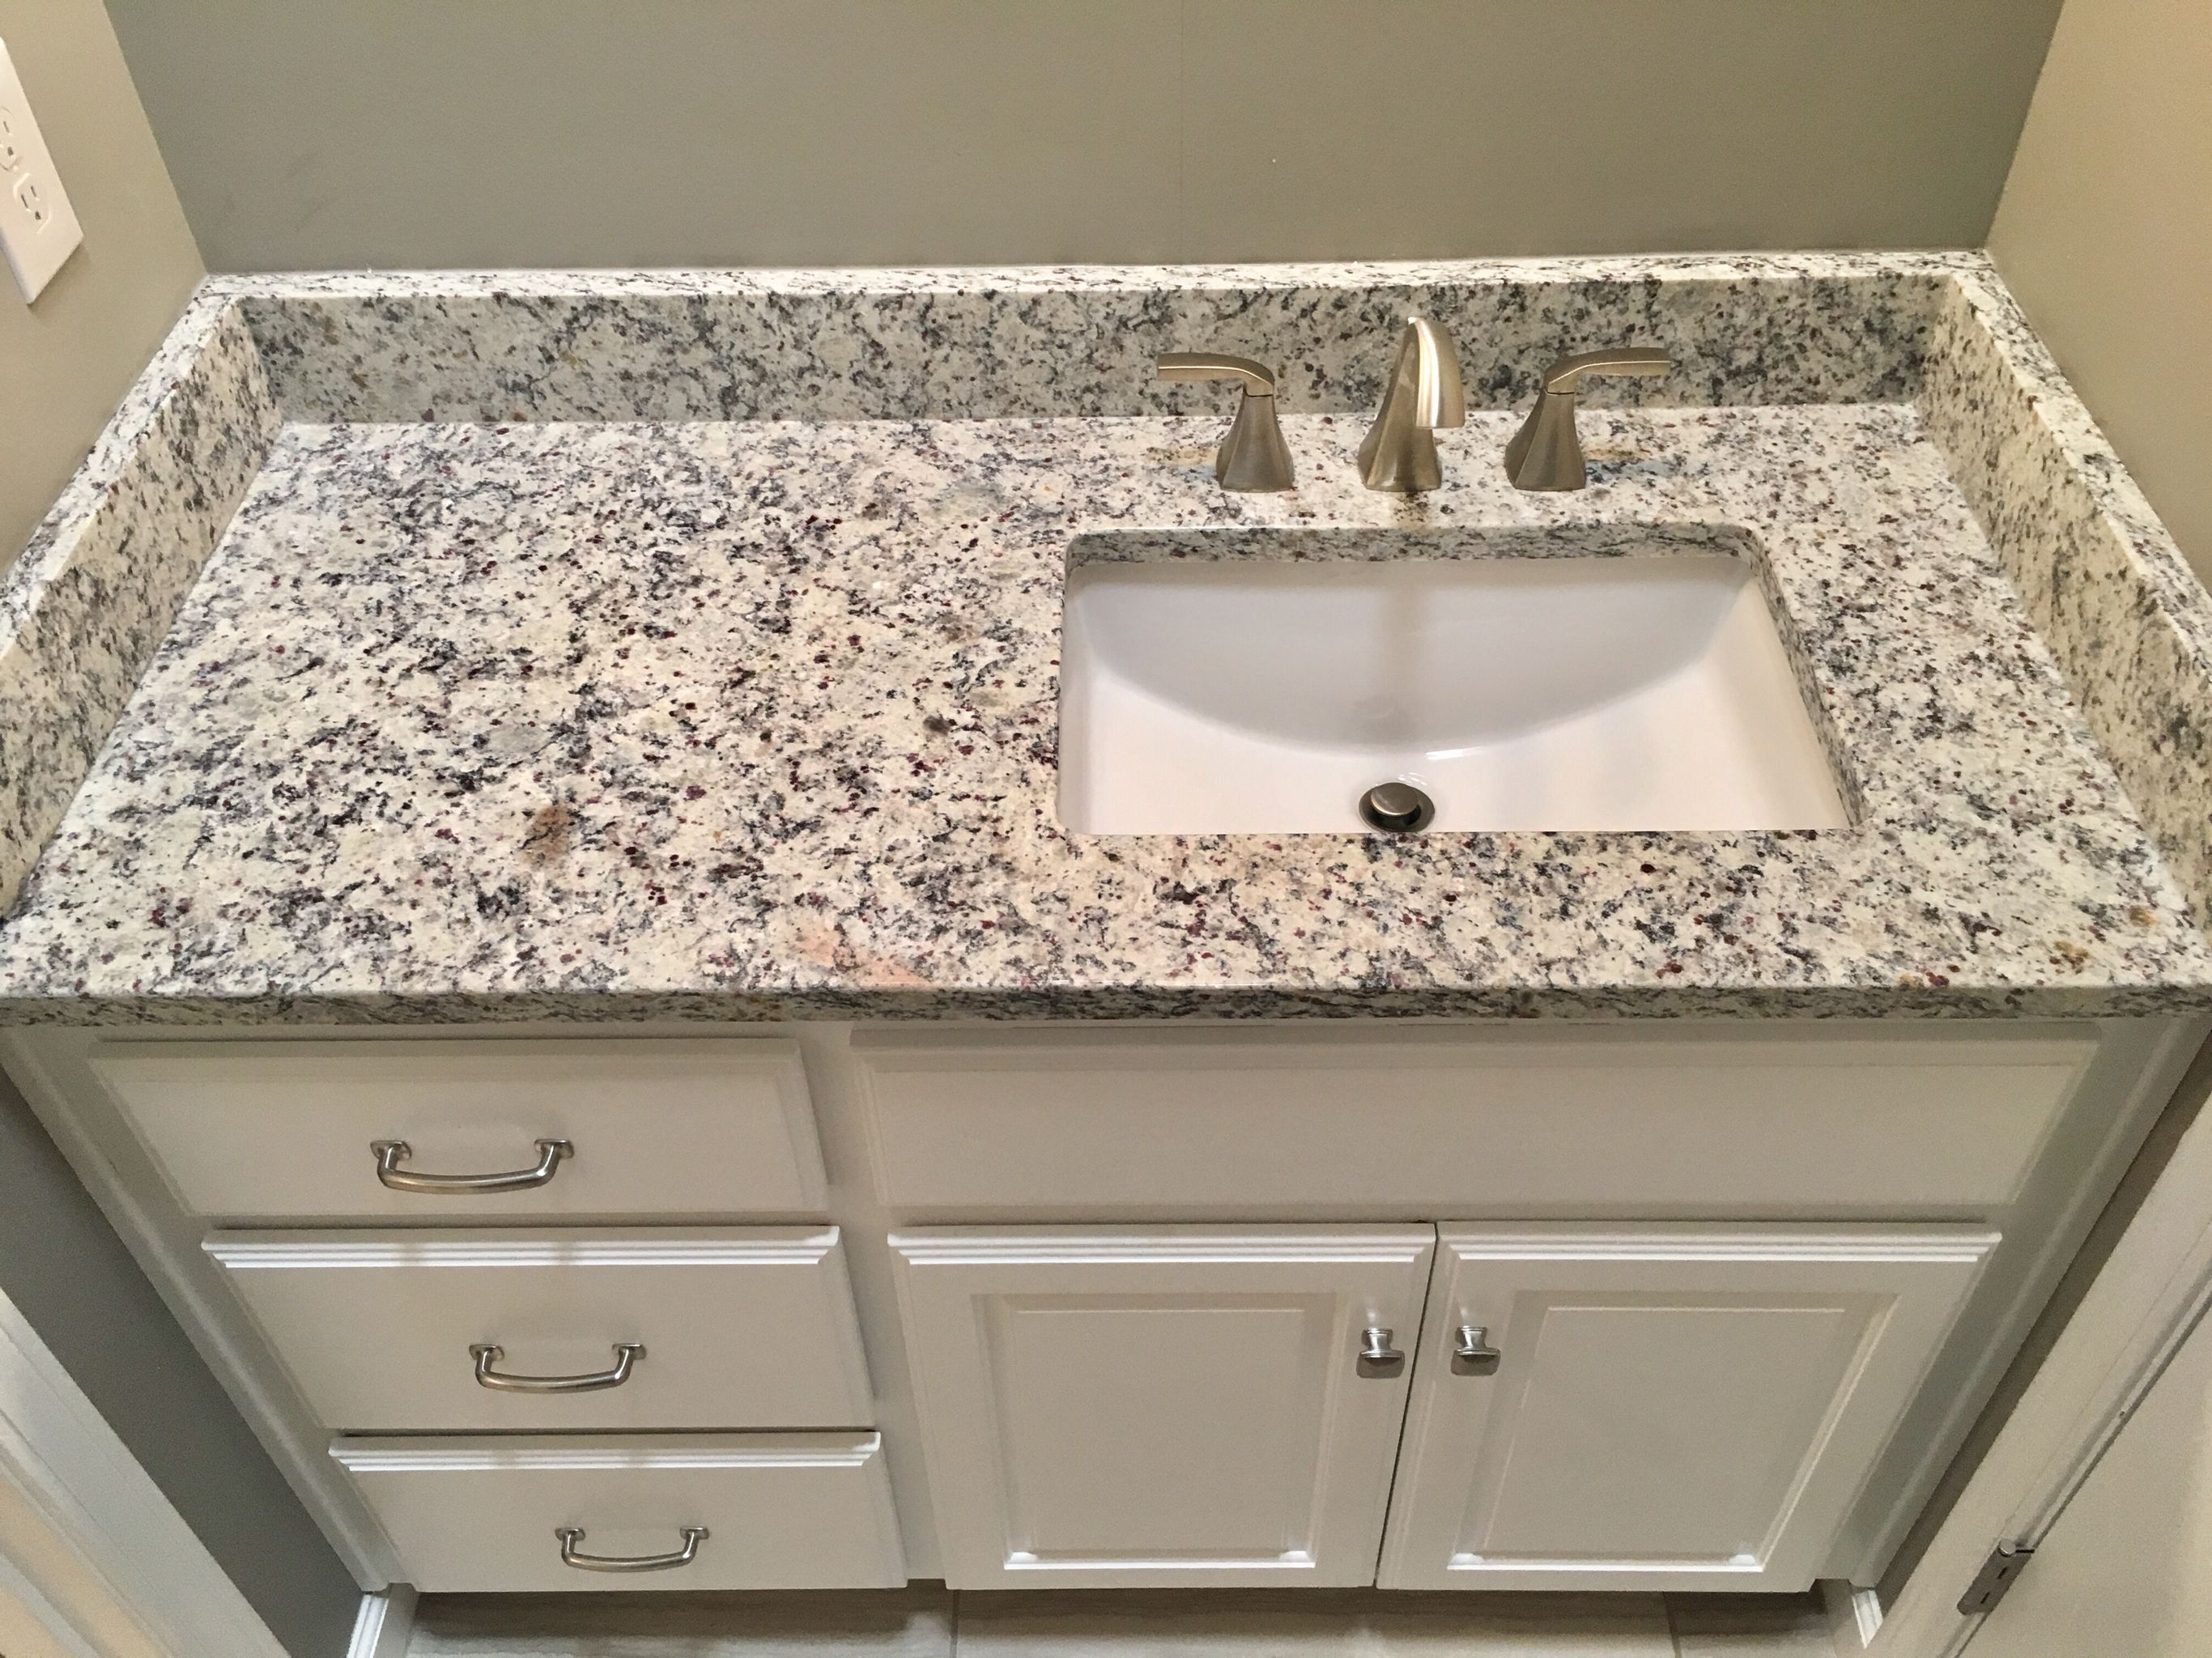 Ashen white granite countertops, Moen 8